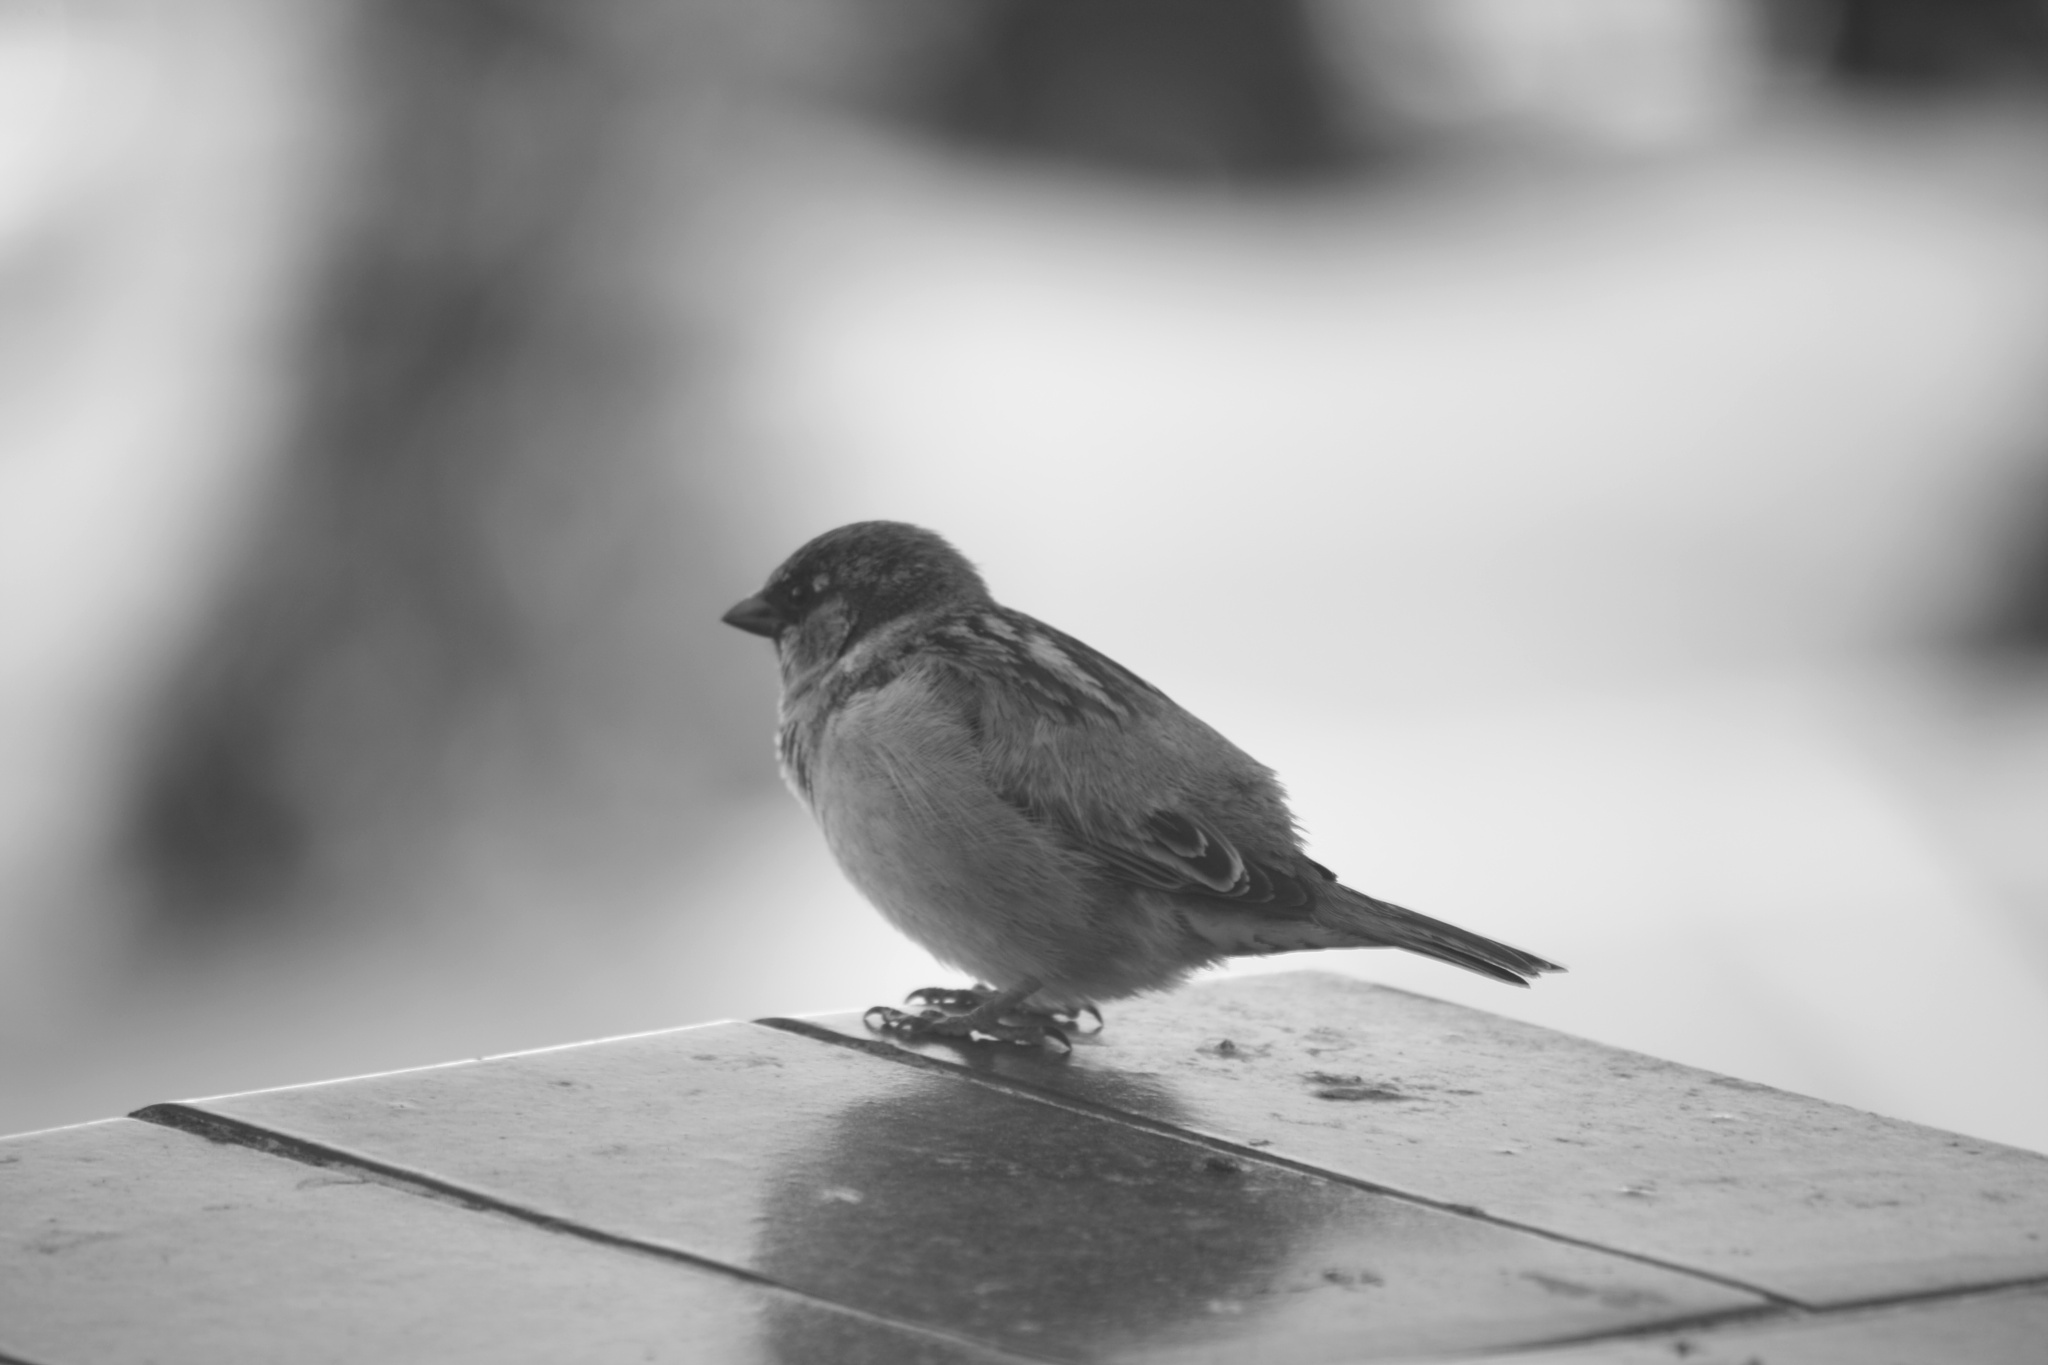 Sparrow by Eassa